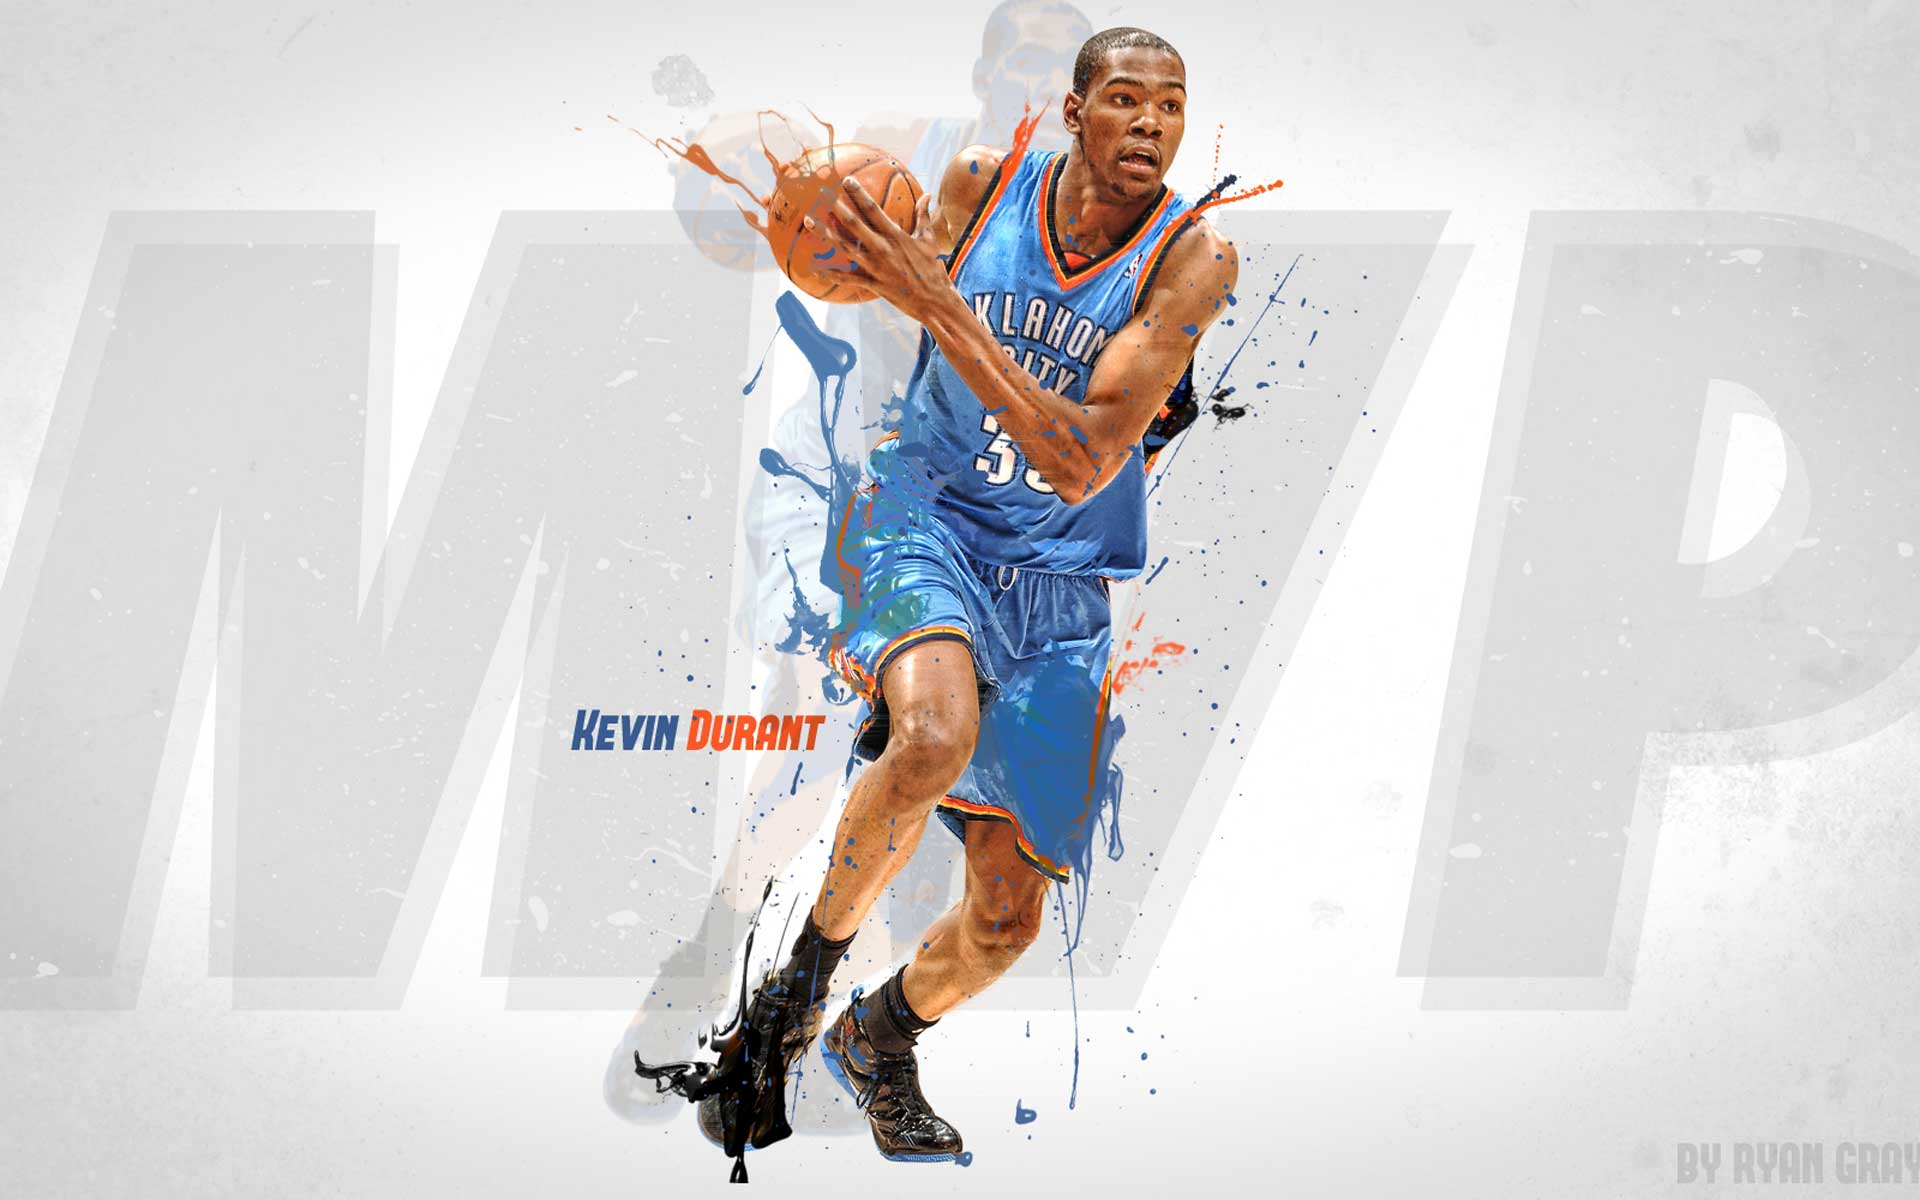 Kevin Durant Wallpapers HD 2017 1920x1200